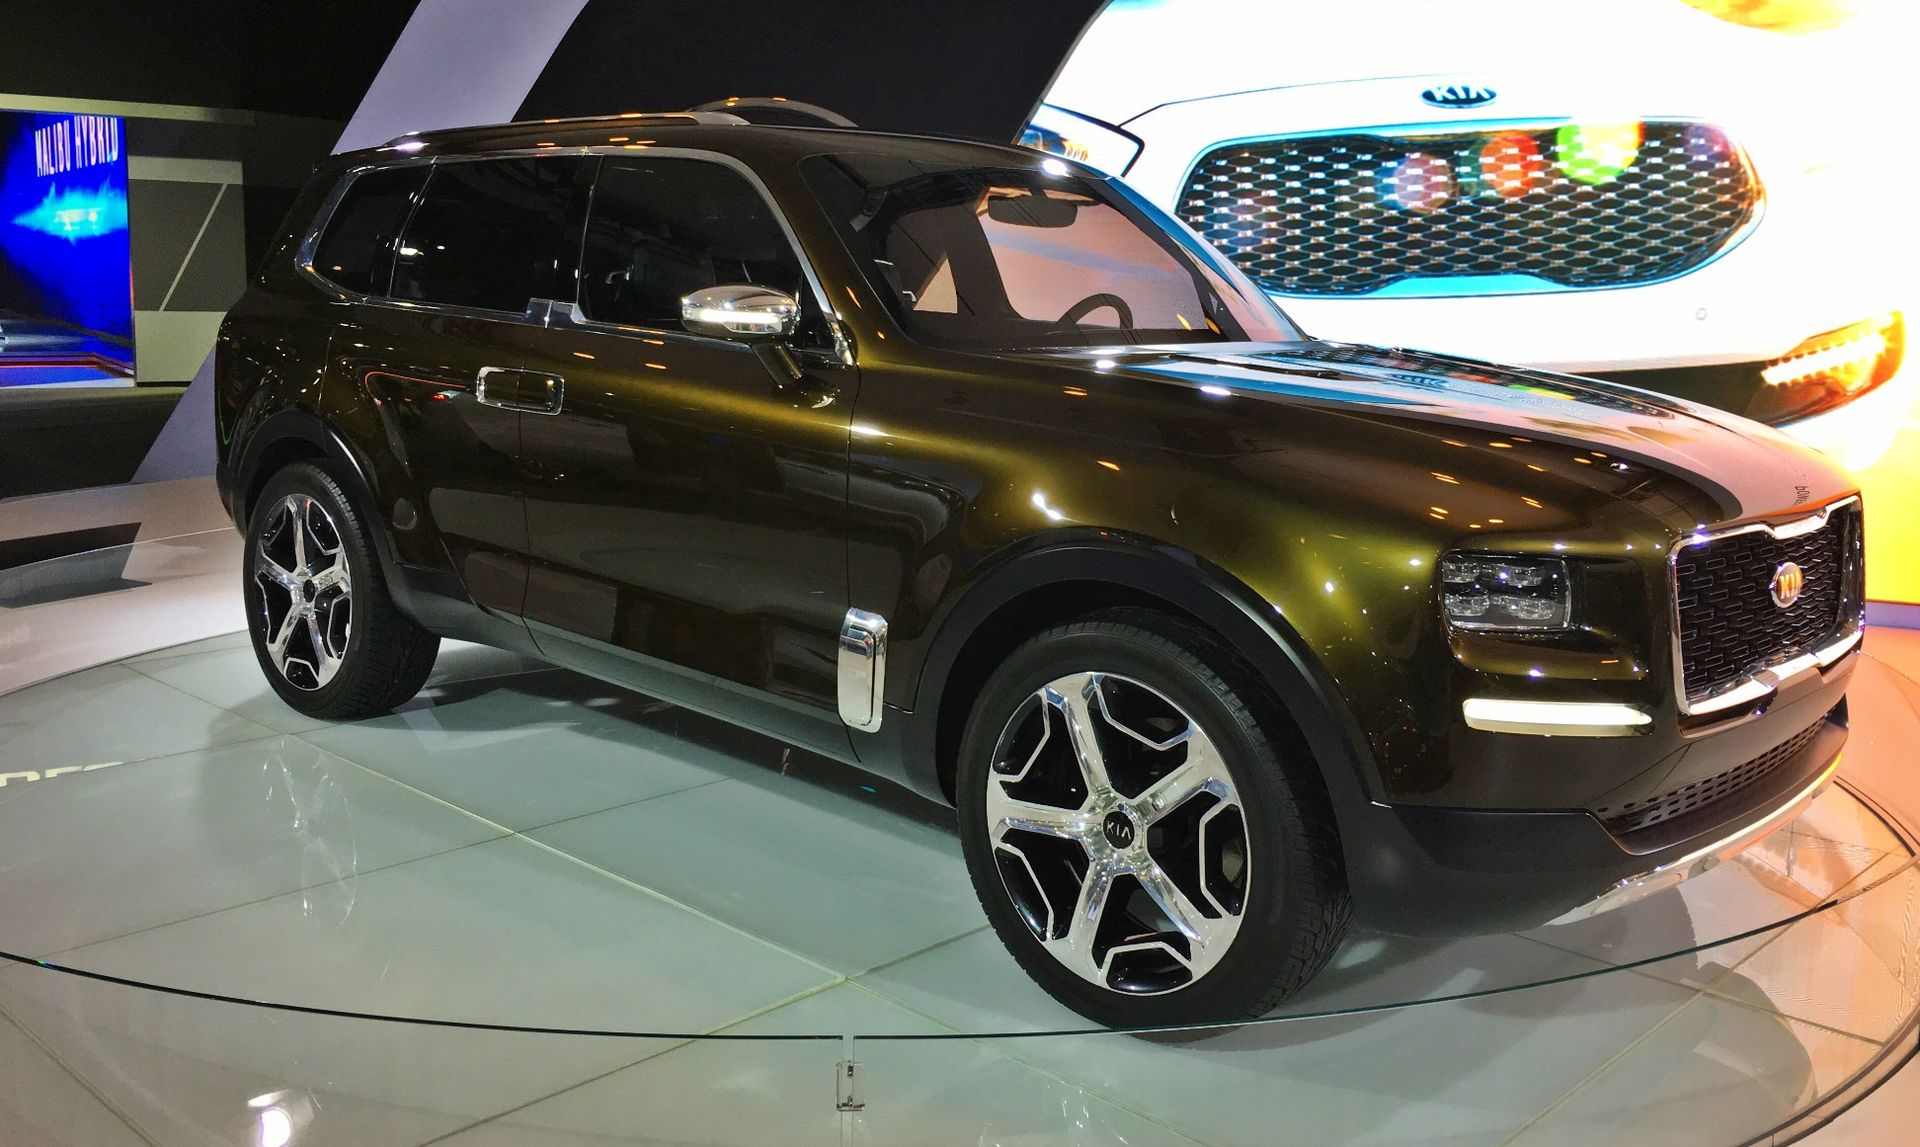 Gibbs Aquada Prix Et Fiche Technique in addition Kia Telluride likewise Q3 also Flying Car Design Finalized Arrive 2019 as well Royal Dutch Shell Lower Oil Prices. on electric fuel